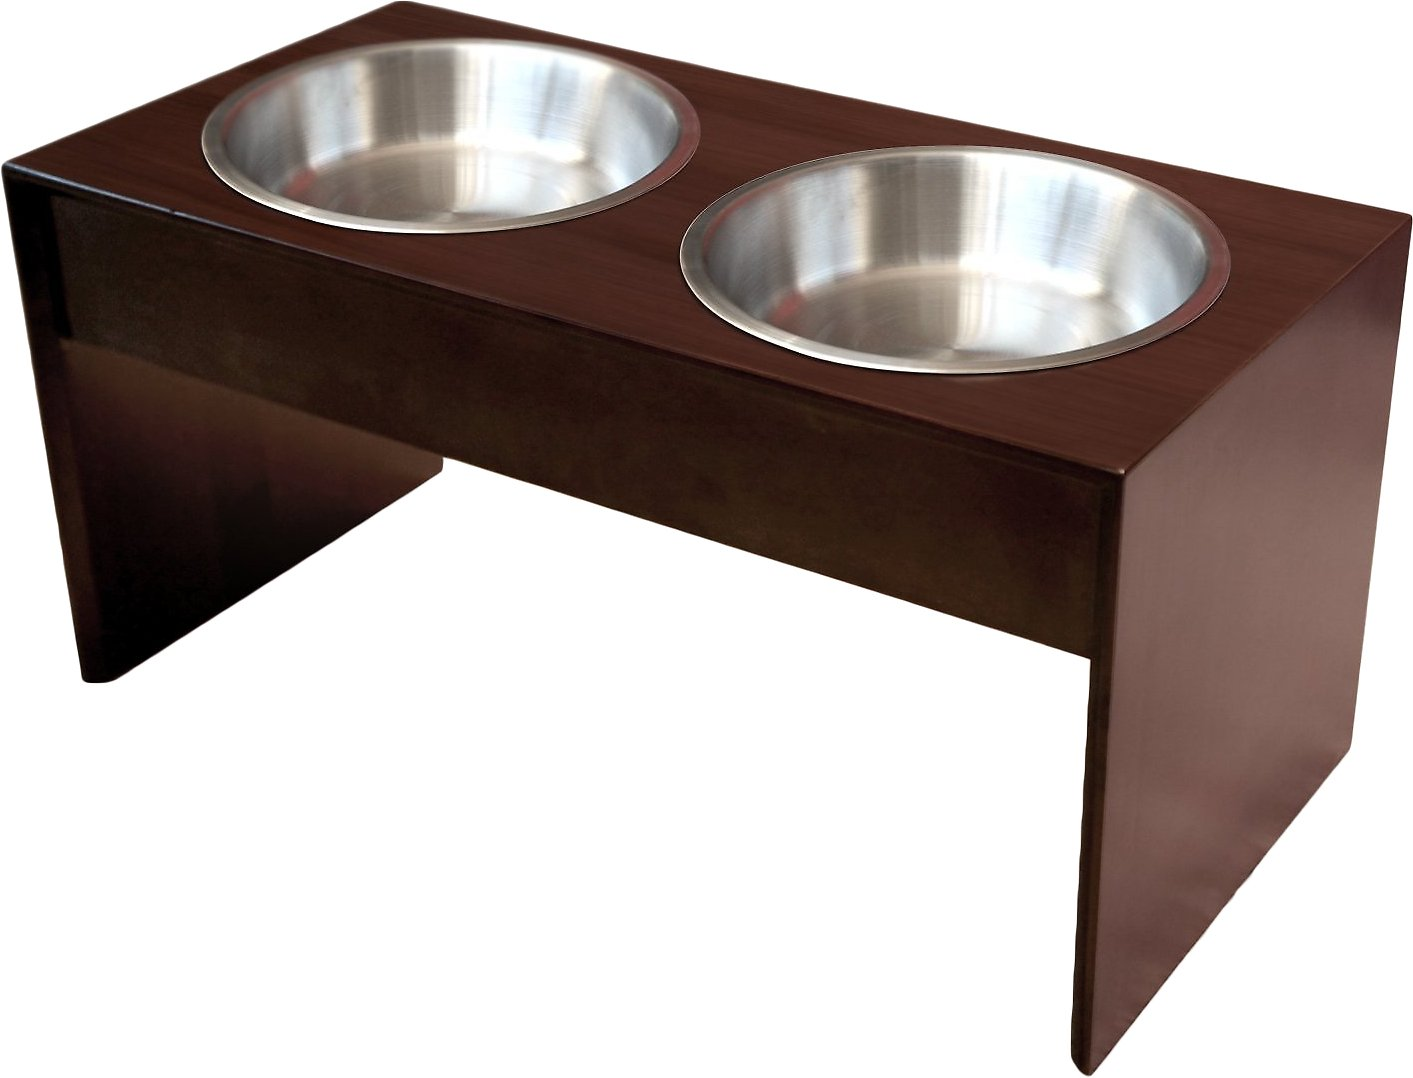 tips charming elevated dog bowls for best dog bowl ideas  - elevated dog bowls  dog waterers  food dispenser for dogs